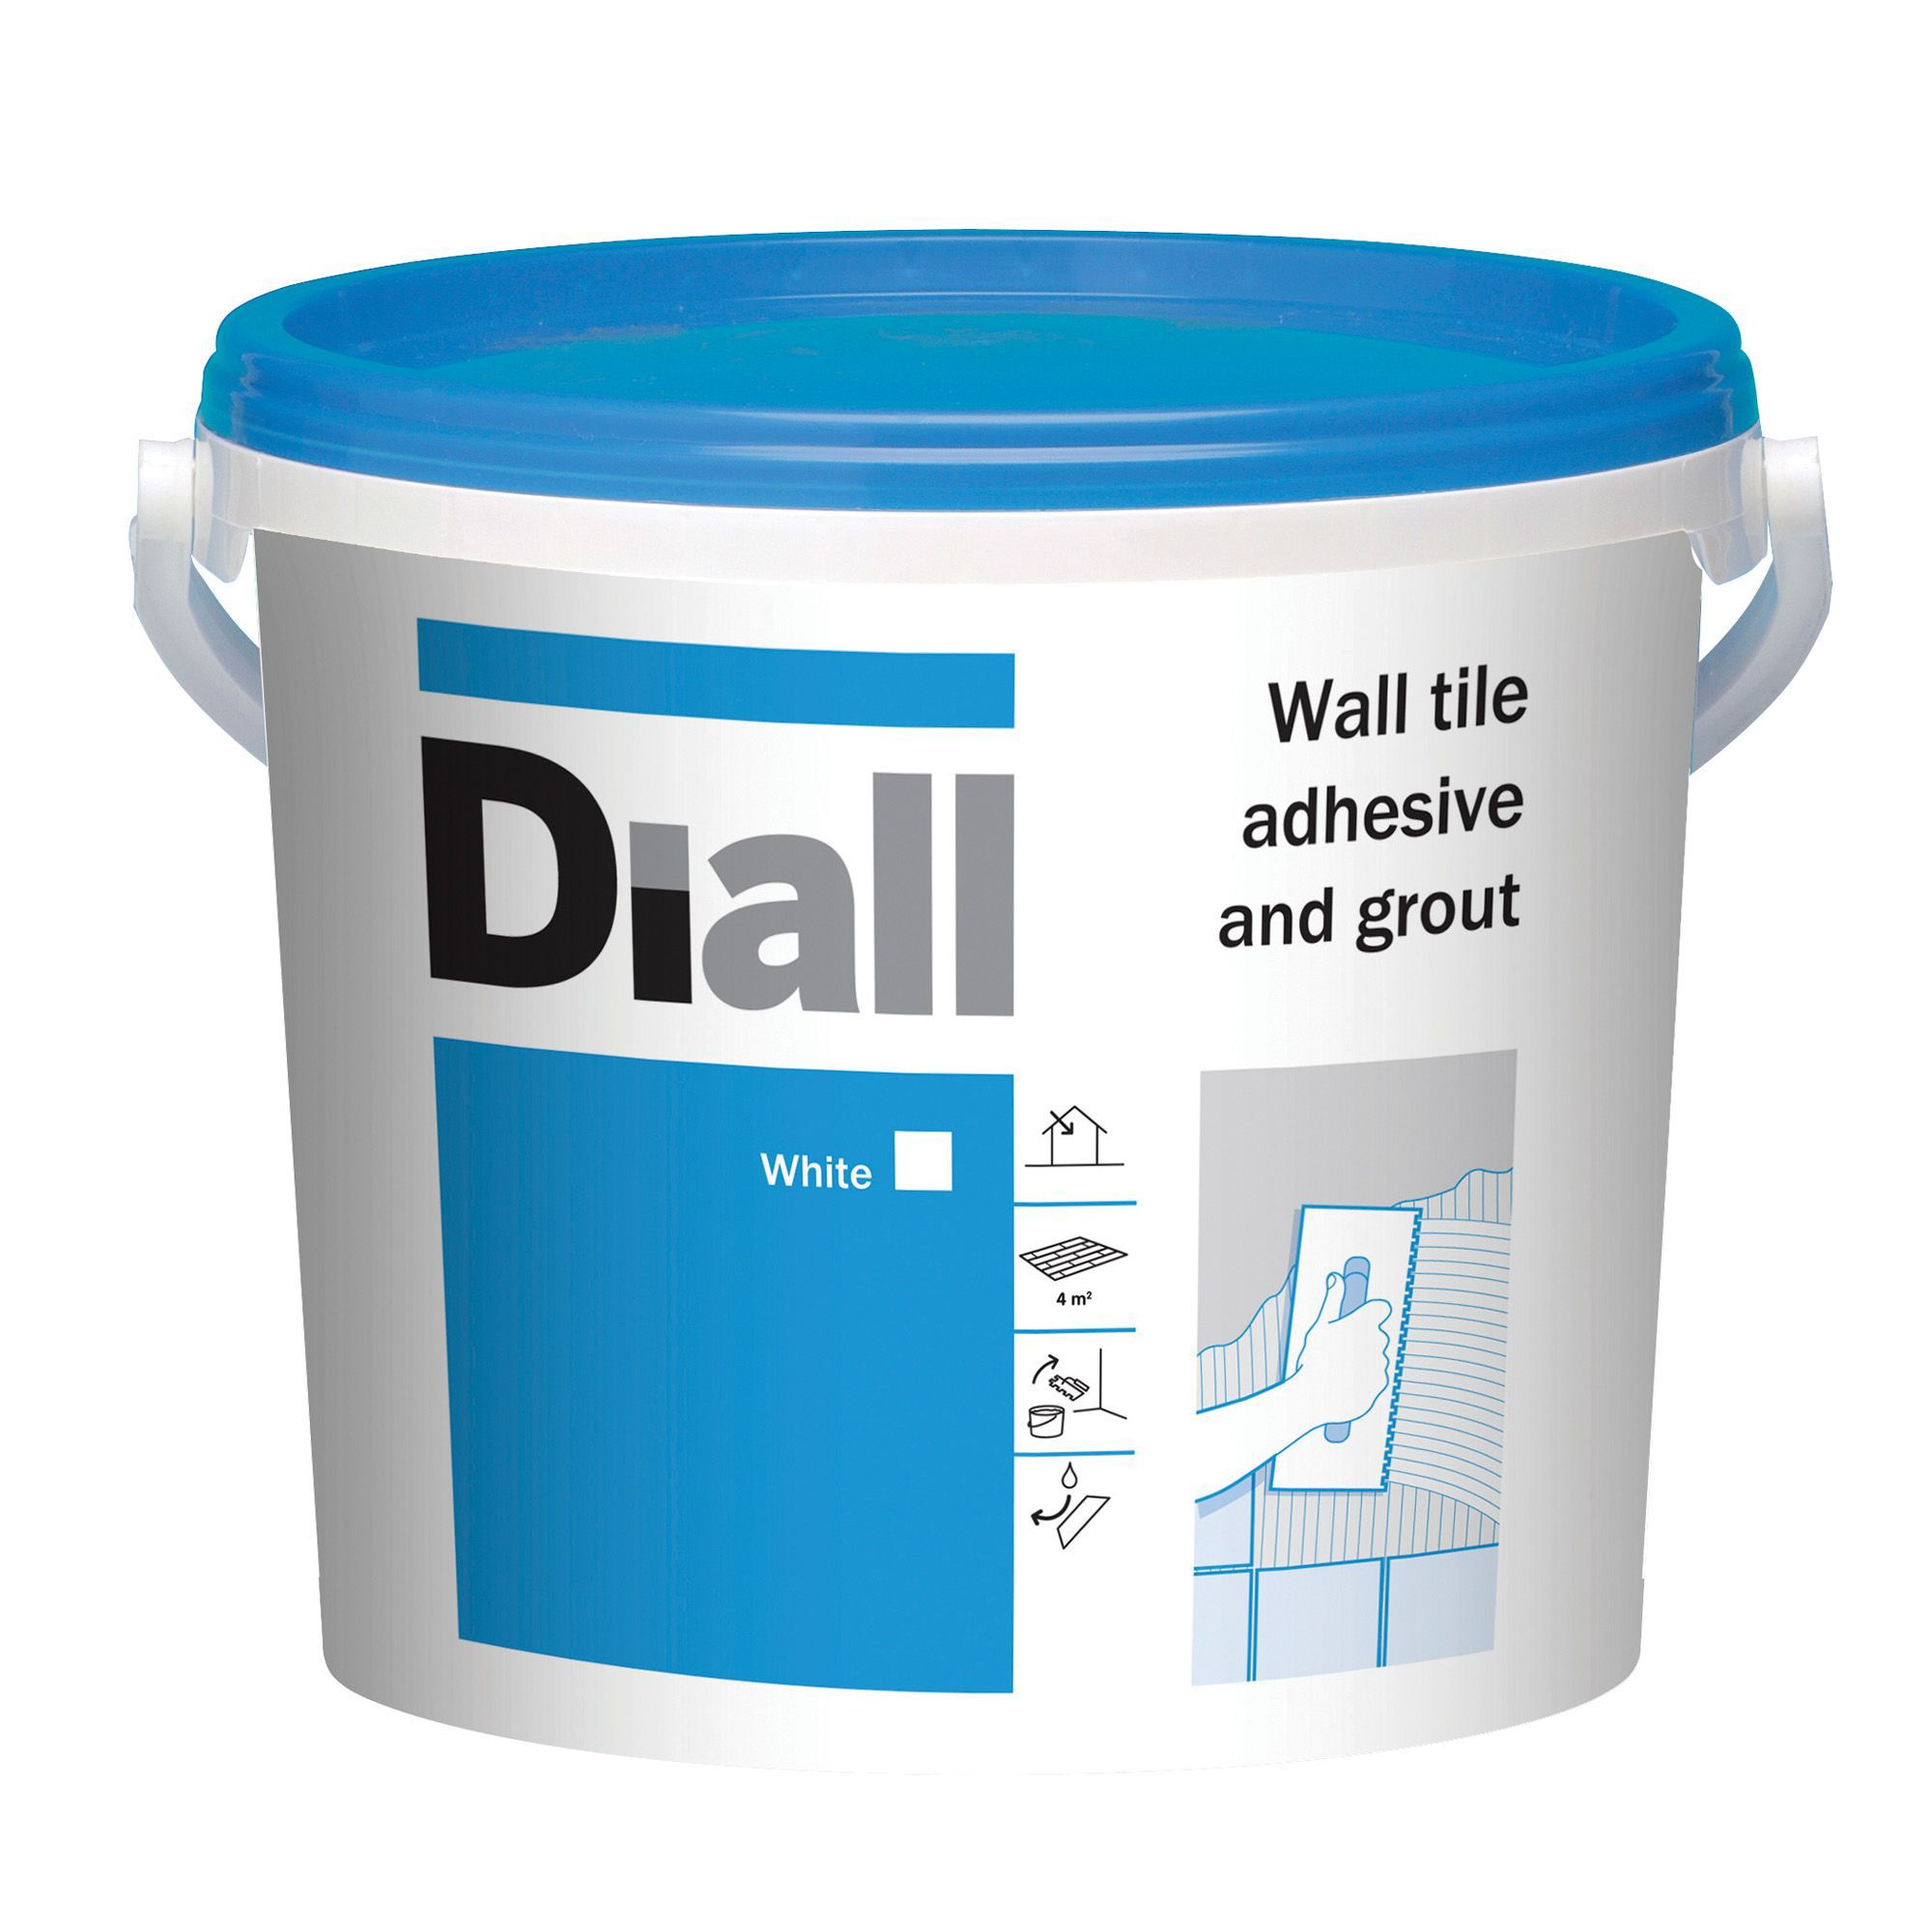 Diall Ready to Use Wall Tile Adhesive & Grout, White 6.6kg ...